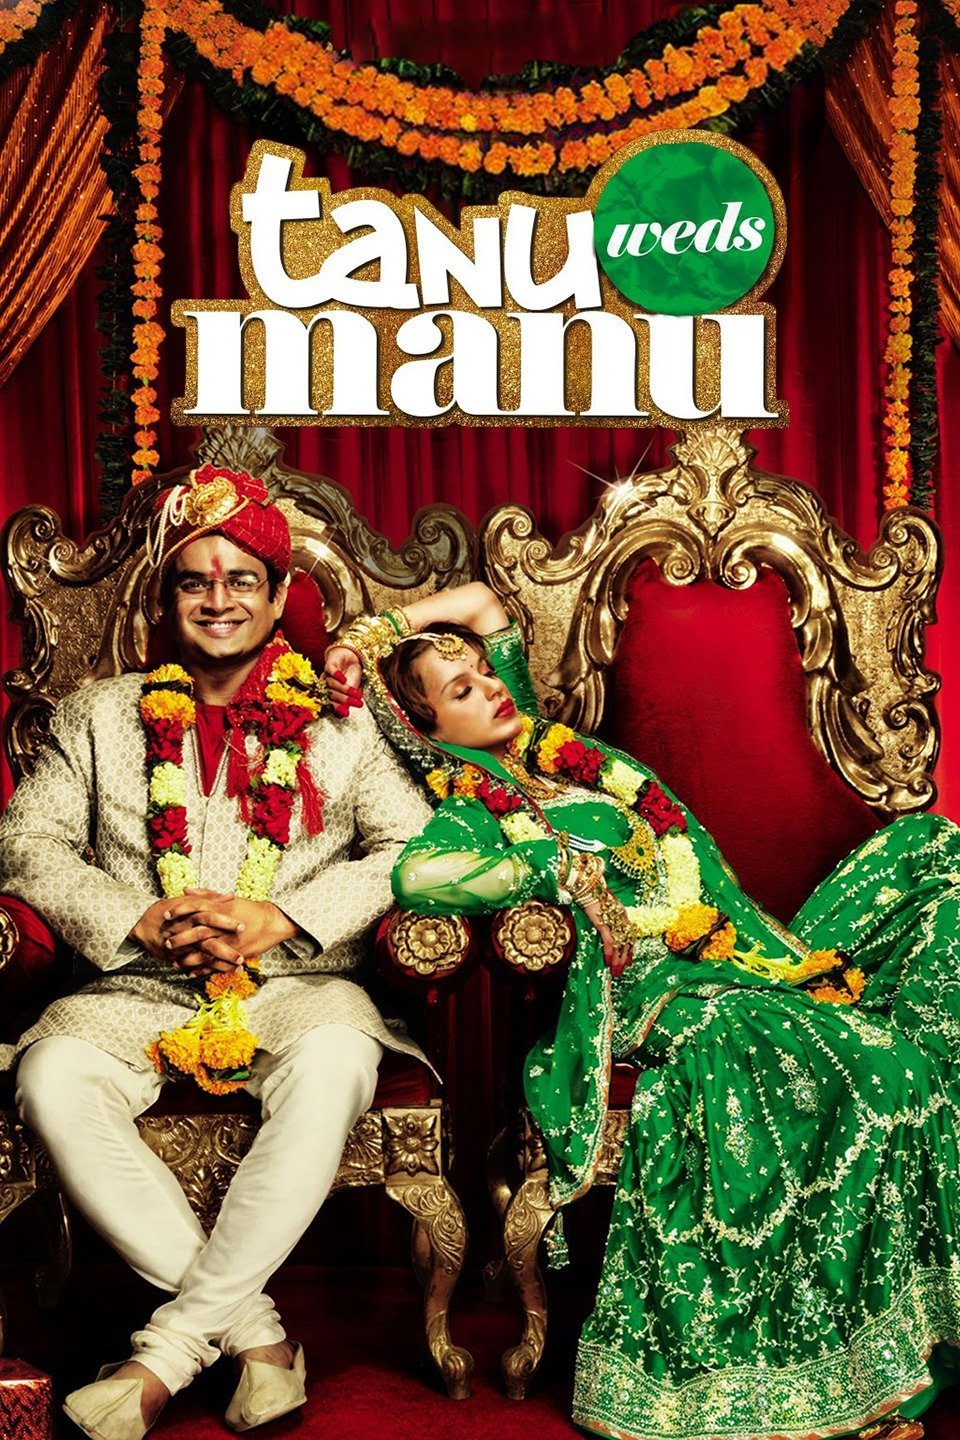 Tanu Weds Manu (2011) Full Movie In Hindi BluRay 480p | 720p